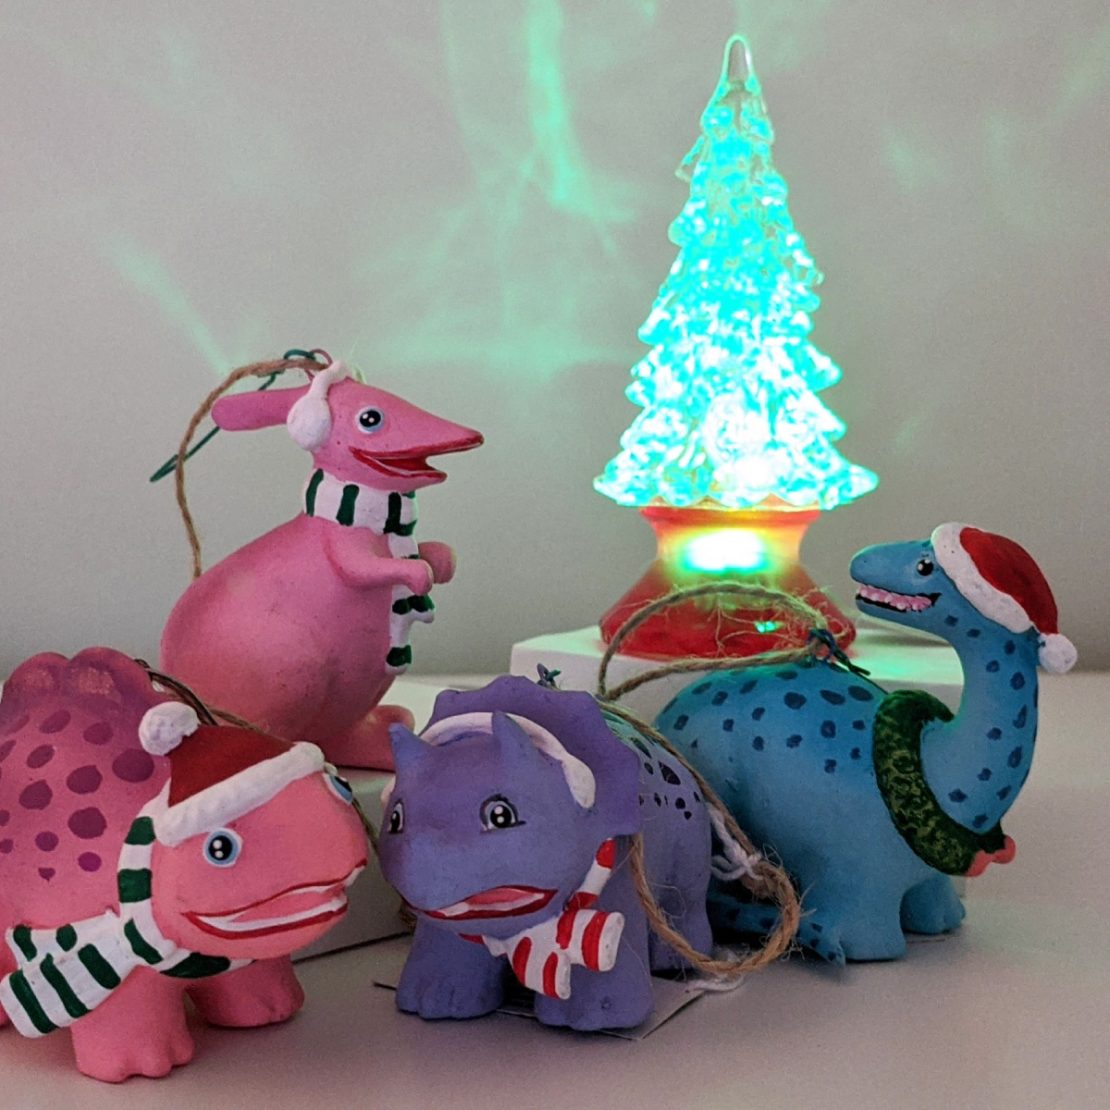 Dinosaur Friends Holiday Ornaments